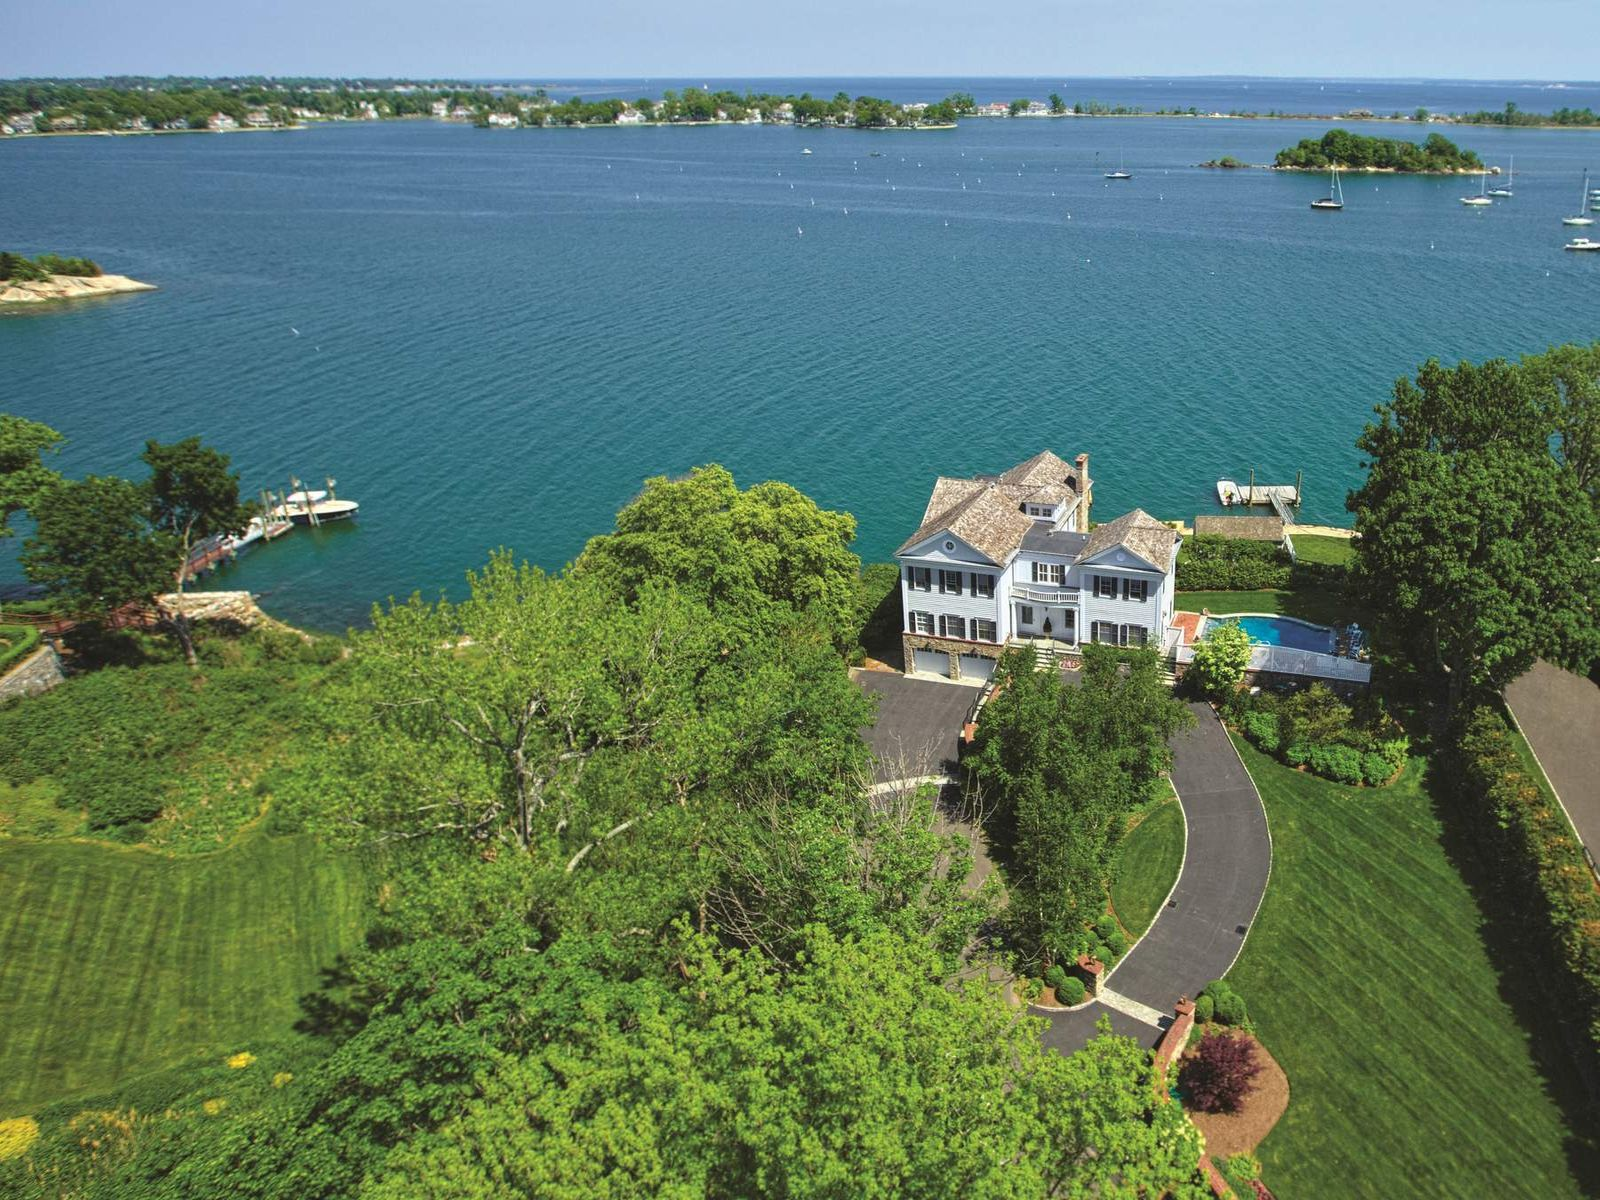 Waterfront Paradise, Riverside CT Single Family Home - Greenwich Real Estate